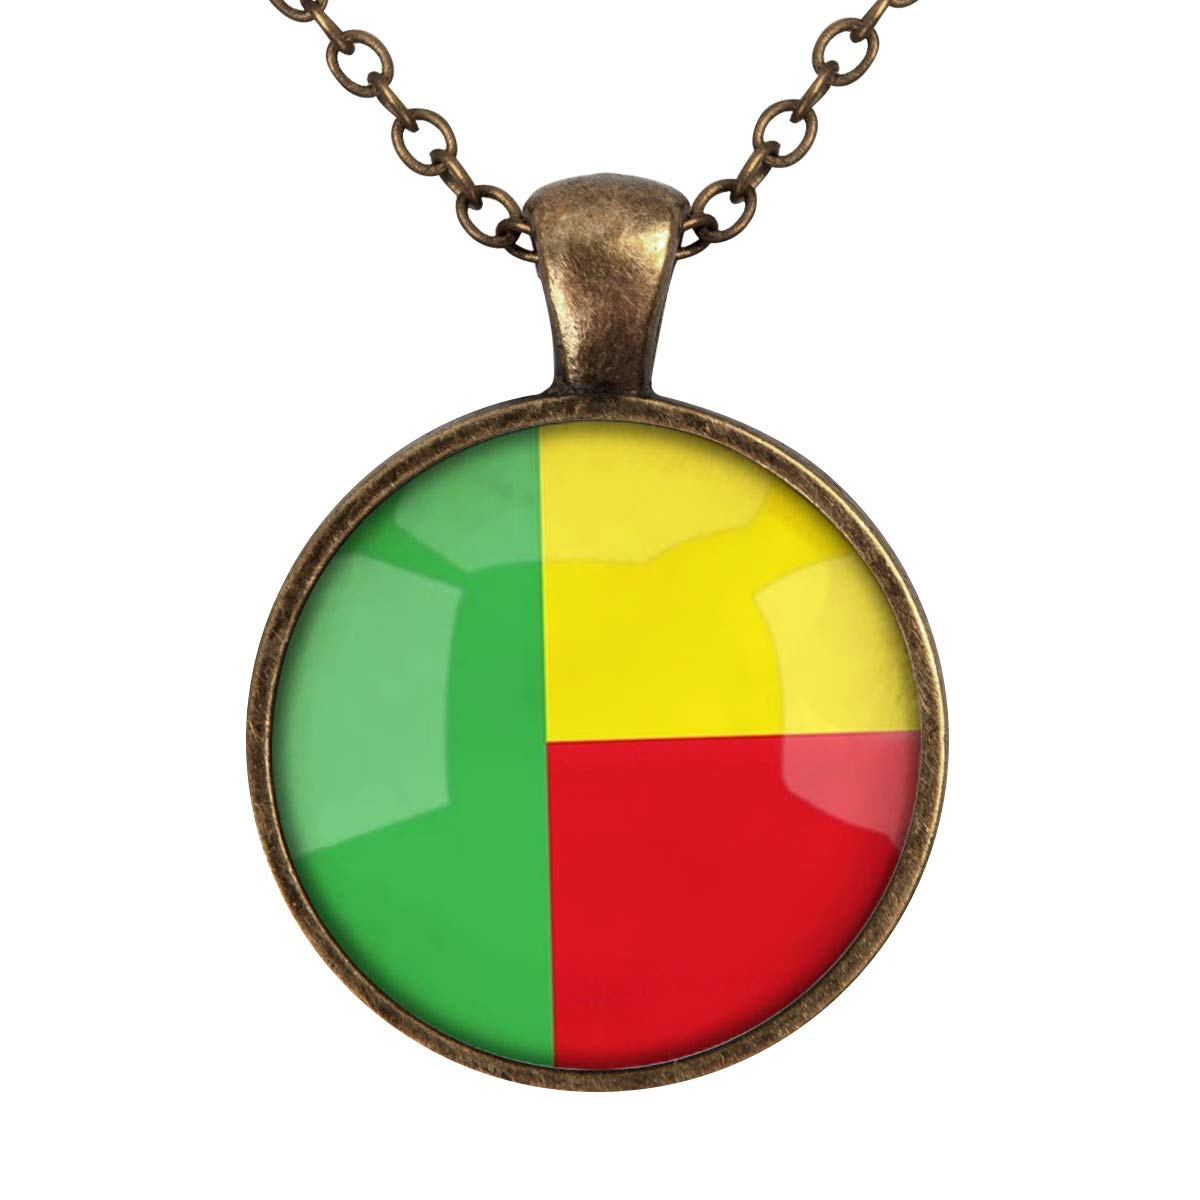 Family Decor The Republic of Benin National Flag Pendant Necklace Cabochon Glass Vintage Bronze Chain Necklace Jewelry Handmade